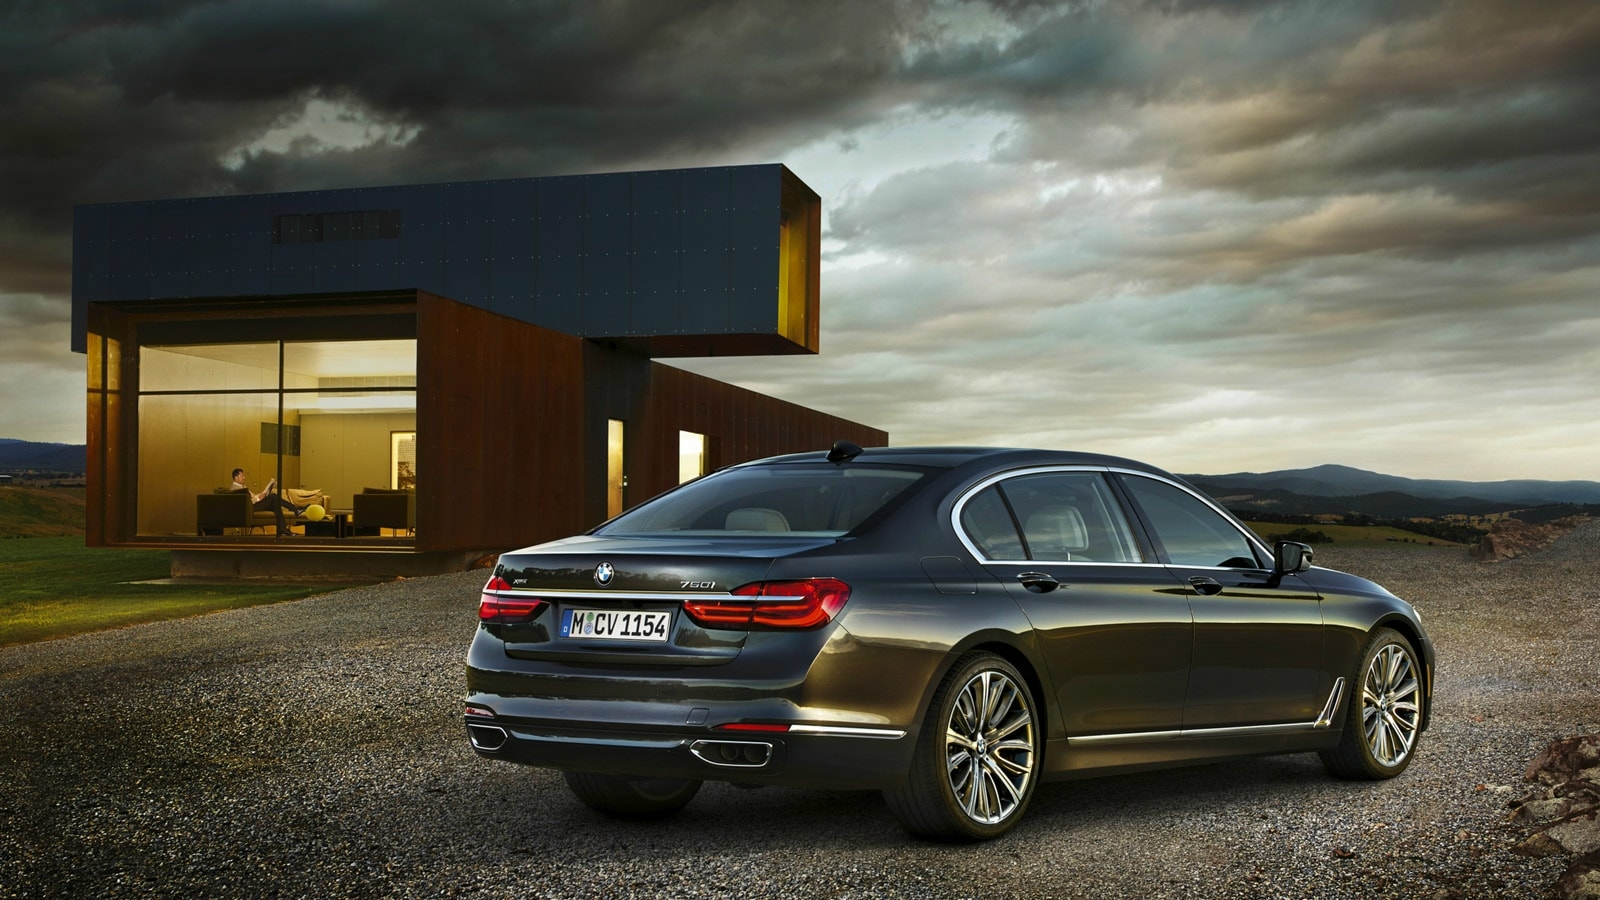 BMW 7 Series 2019 HD Wallpapers | Background Images ...